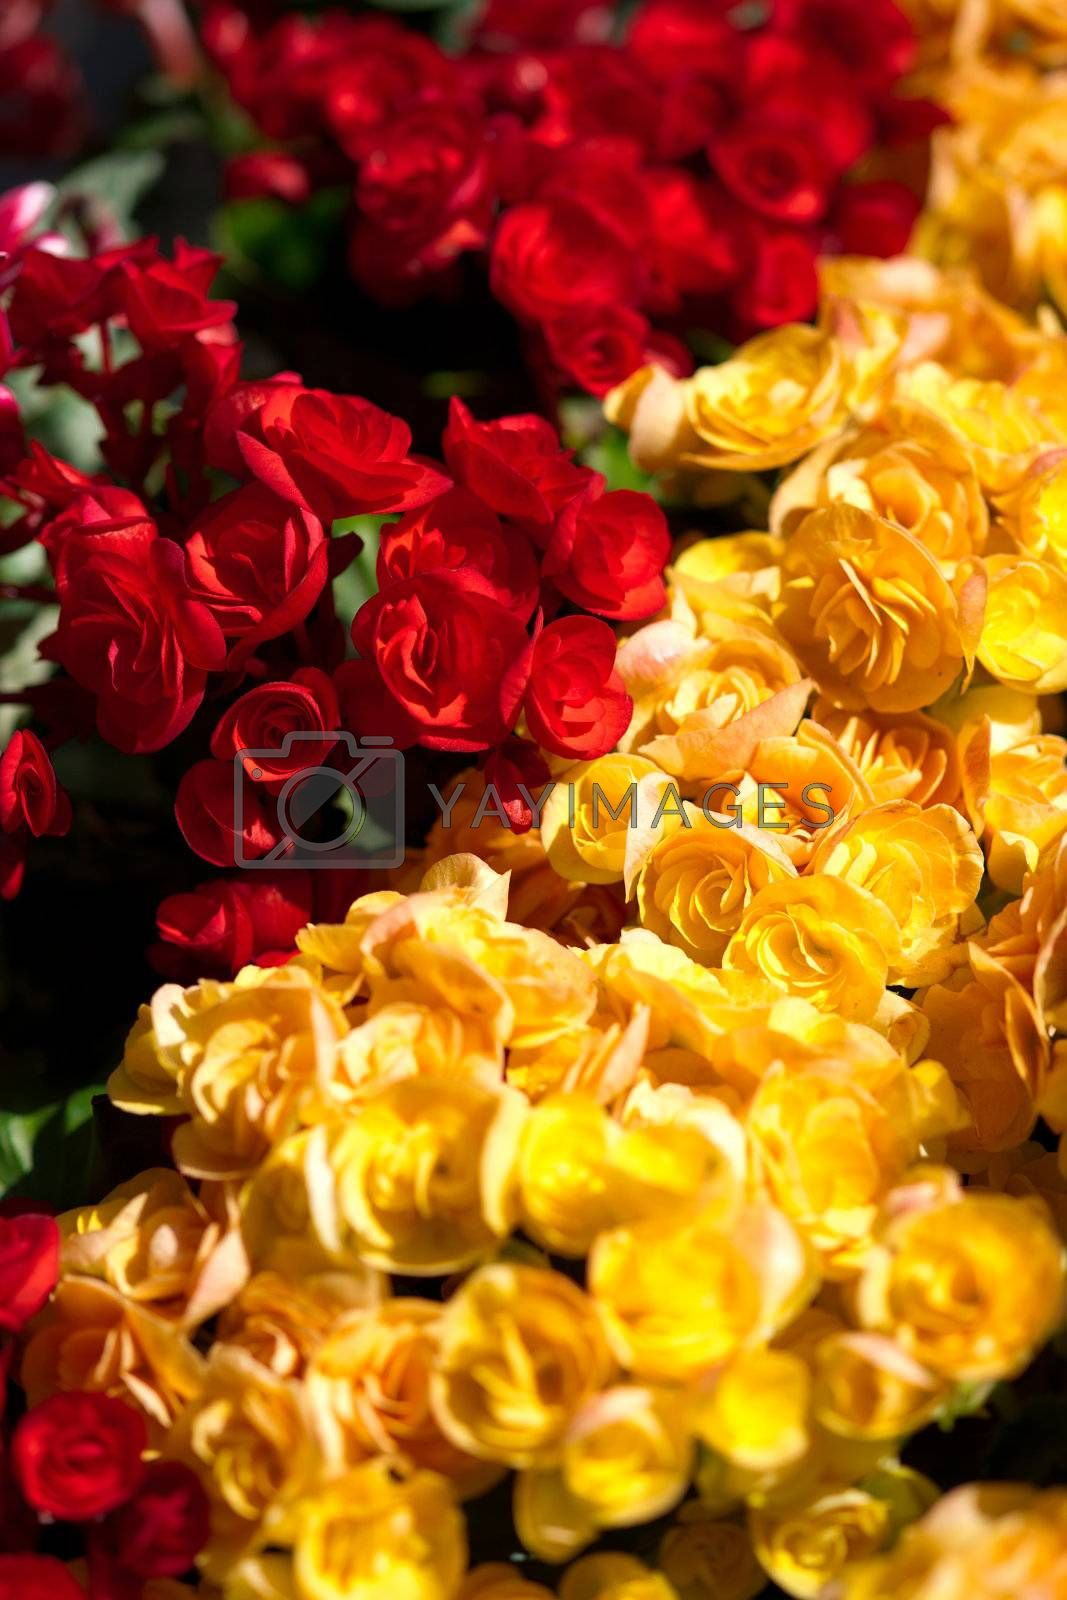 Red and yellow flowers close-up